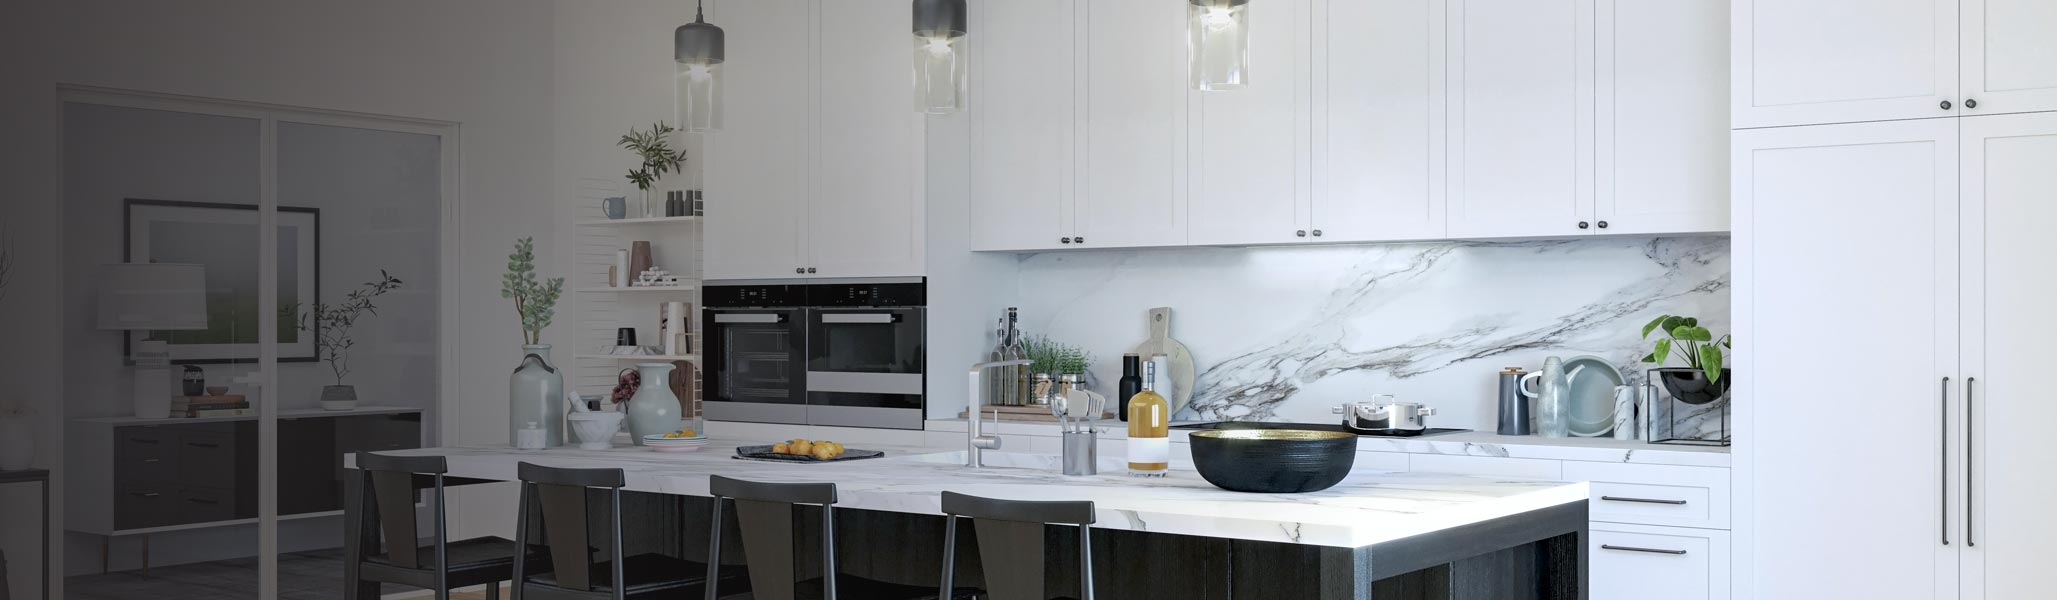 New Jersey Kitchen Contractor